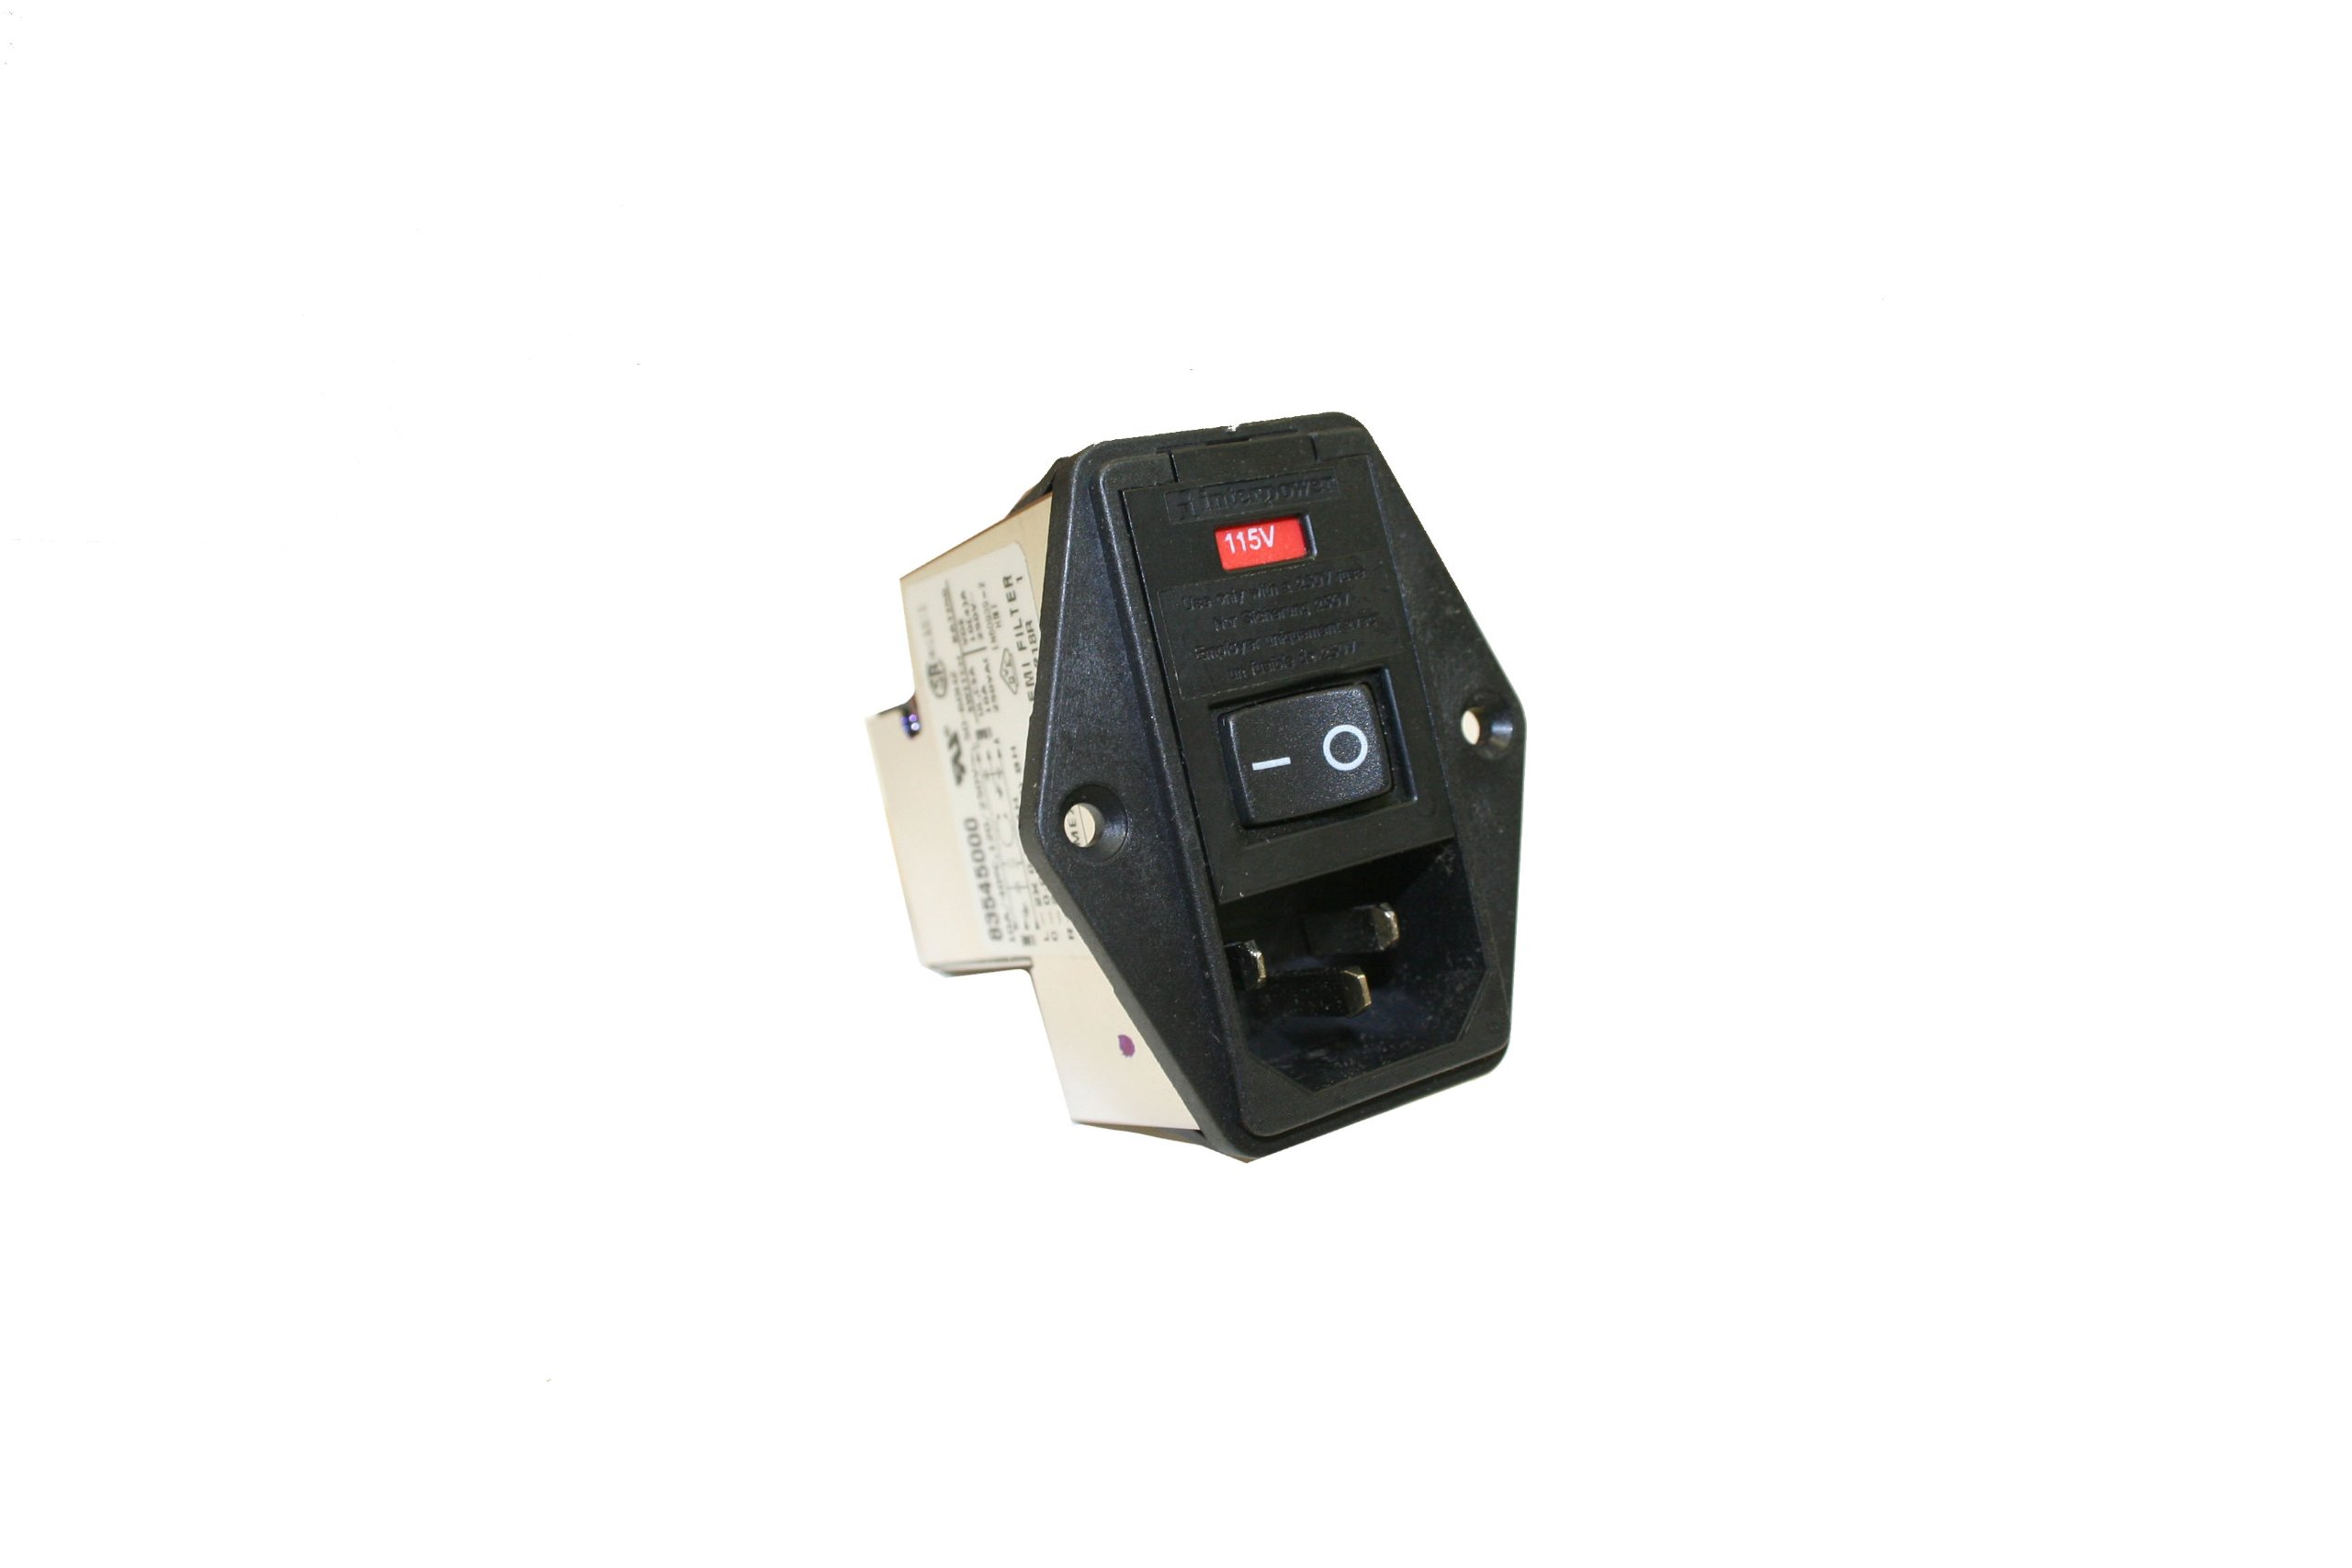 Interpower 83545000 Five Function Screw Mount Module, C14 Inlet, Switch, Single Fused, Voltage Selector, Filter, 10A Current Rating, 120/250VAC Voltage Rating by Interpower